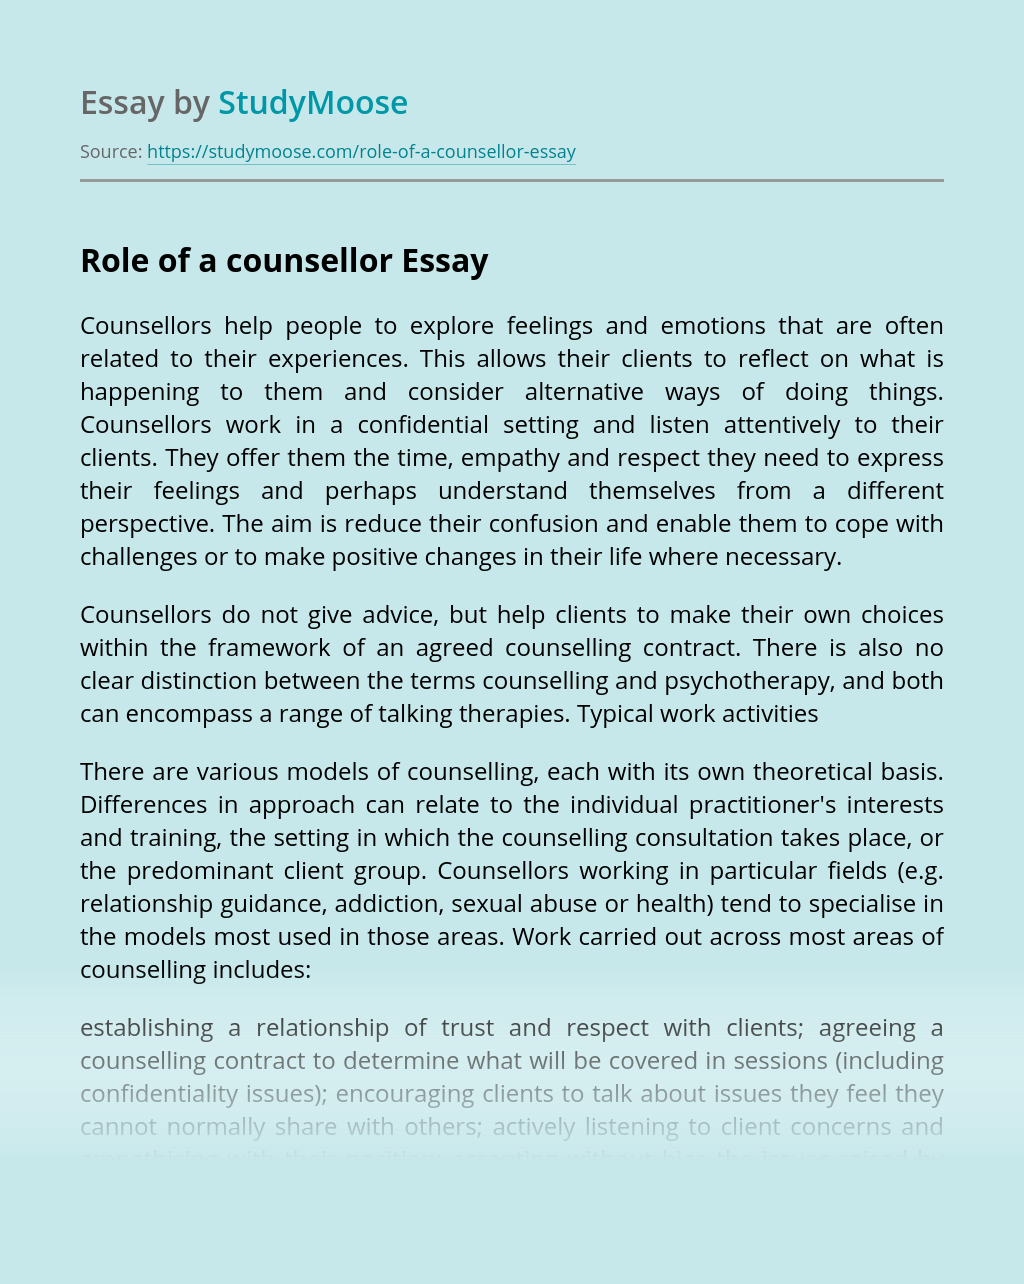 Role of a counsellor